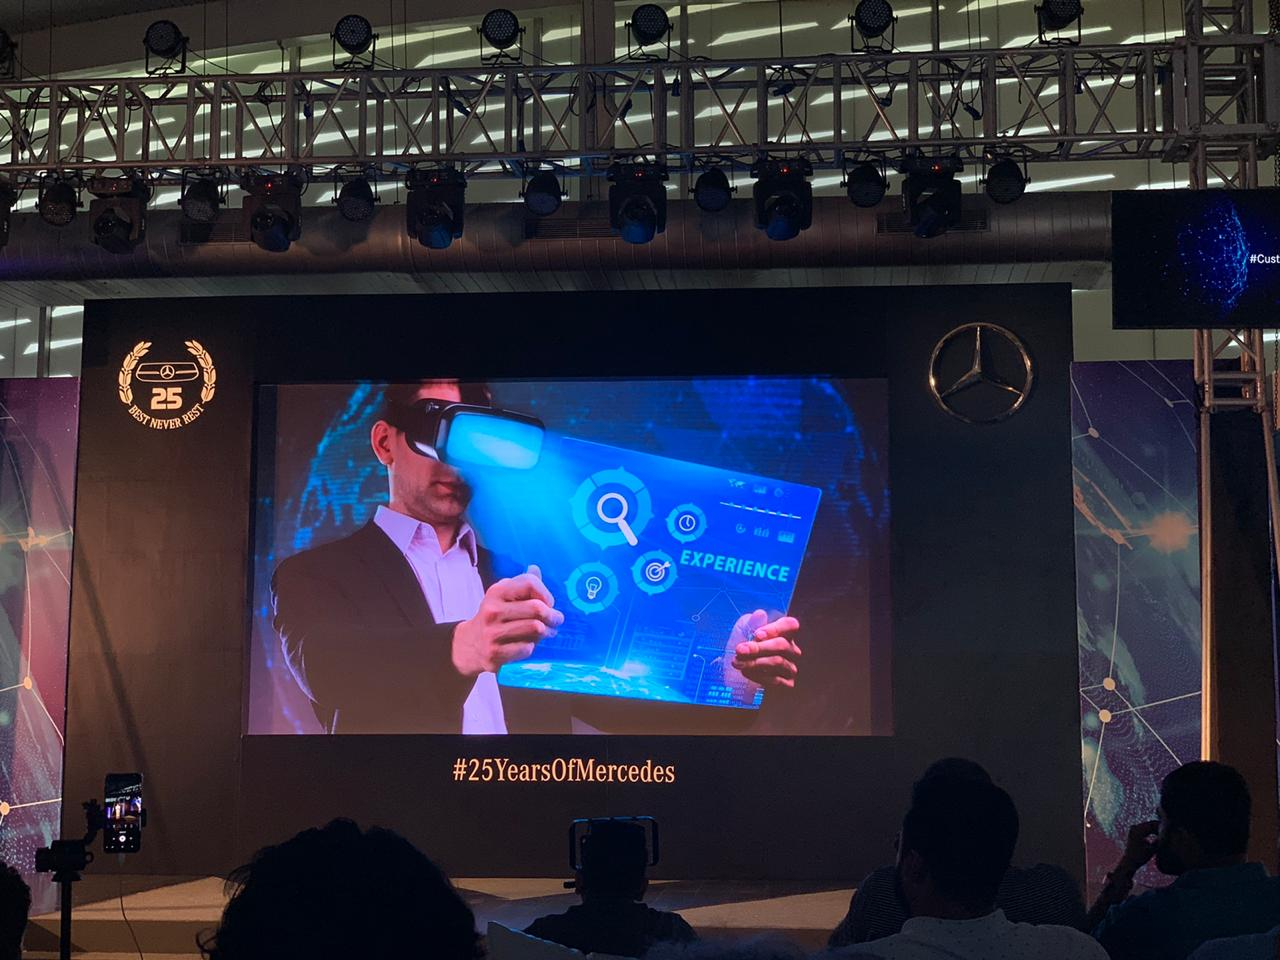 <p>Experiences are an important factor for today&rsquo;s car customers. Mercedes-Benz aims to enrich the in-car experience for its customer base</p>